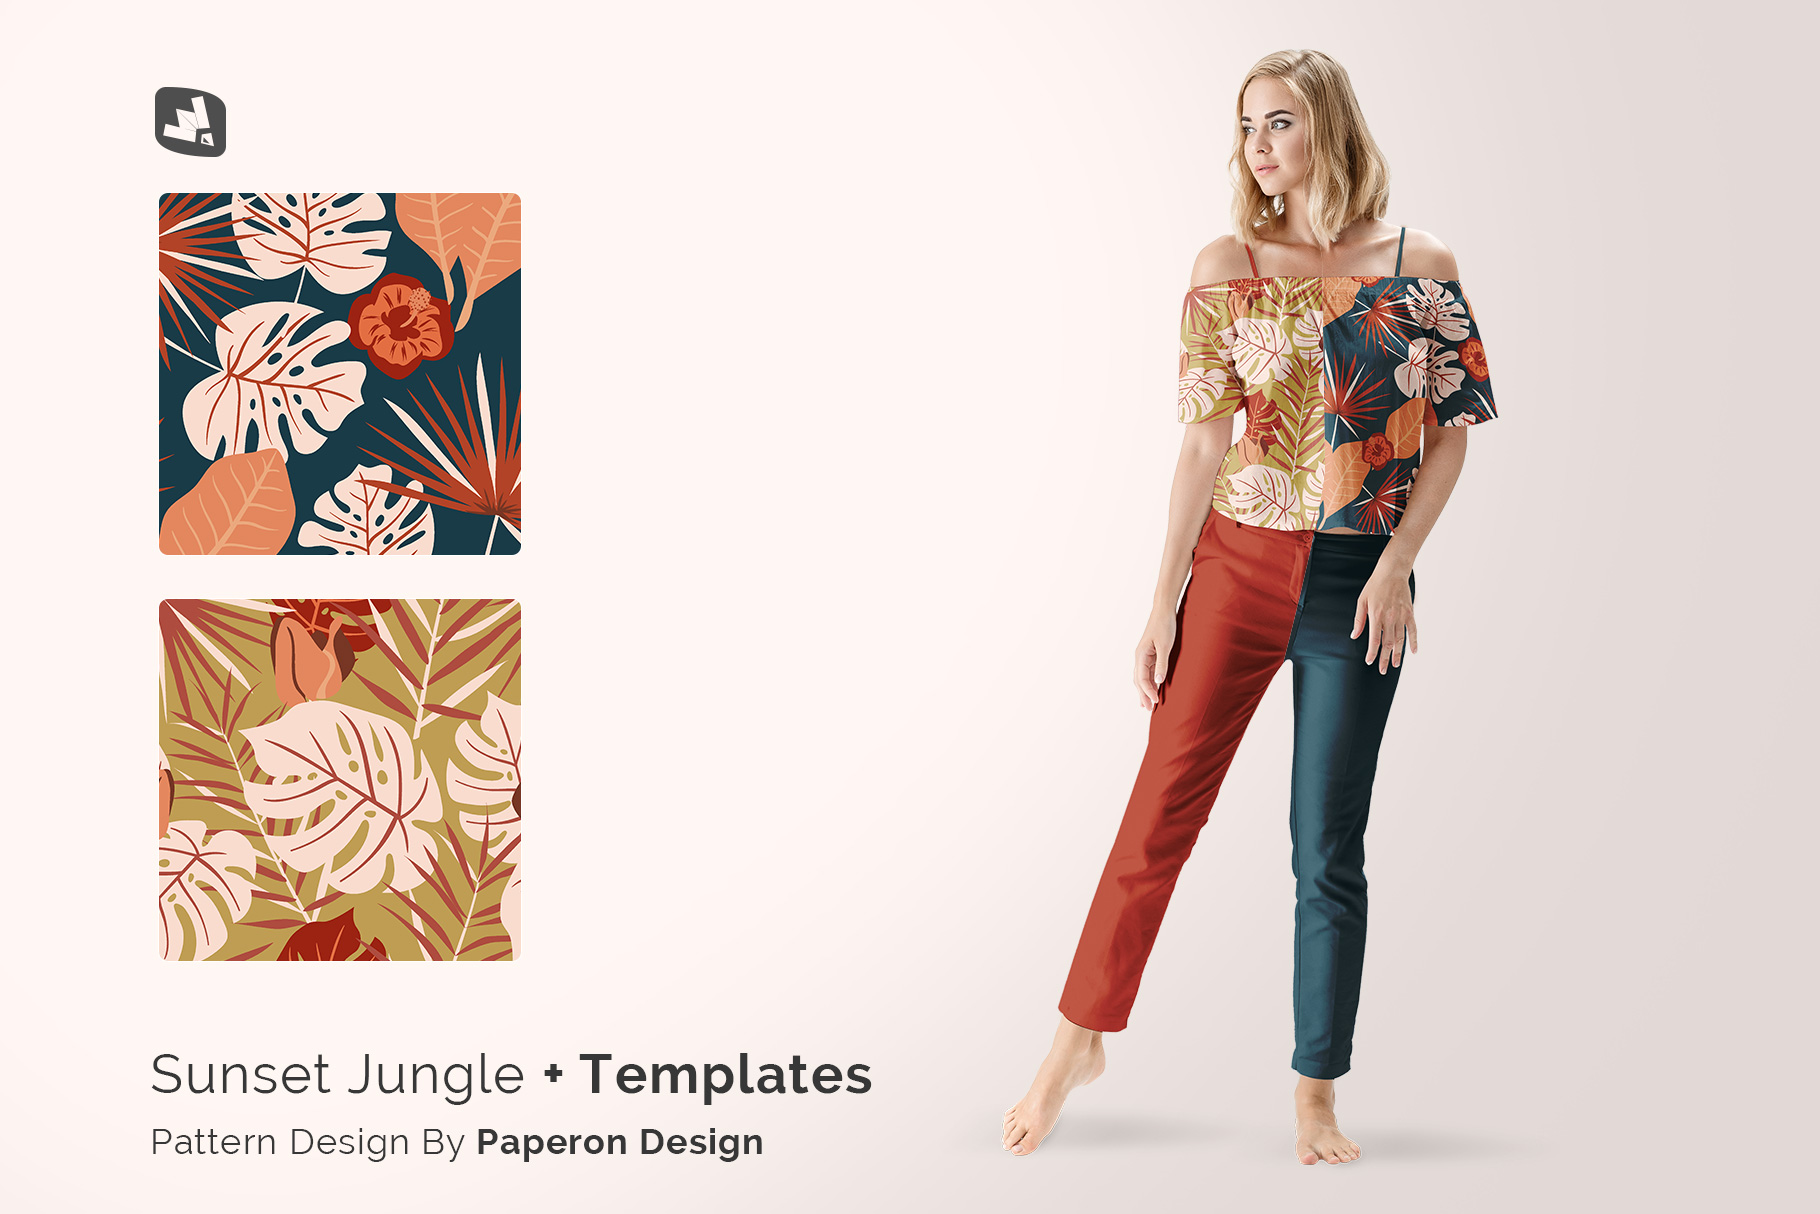 designer's credit of the summer outfit mockup with female model